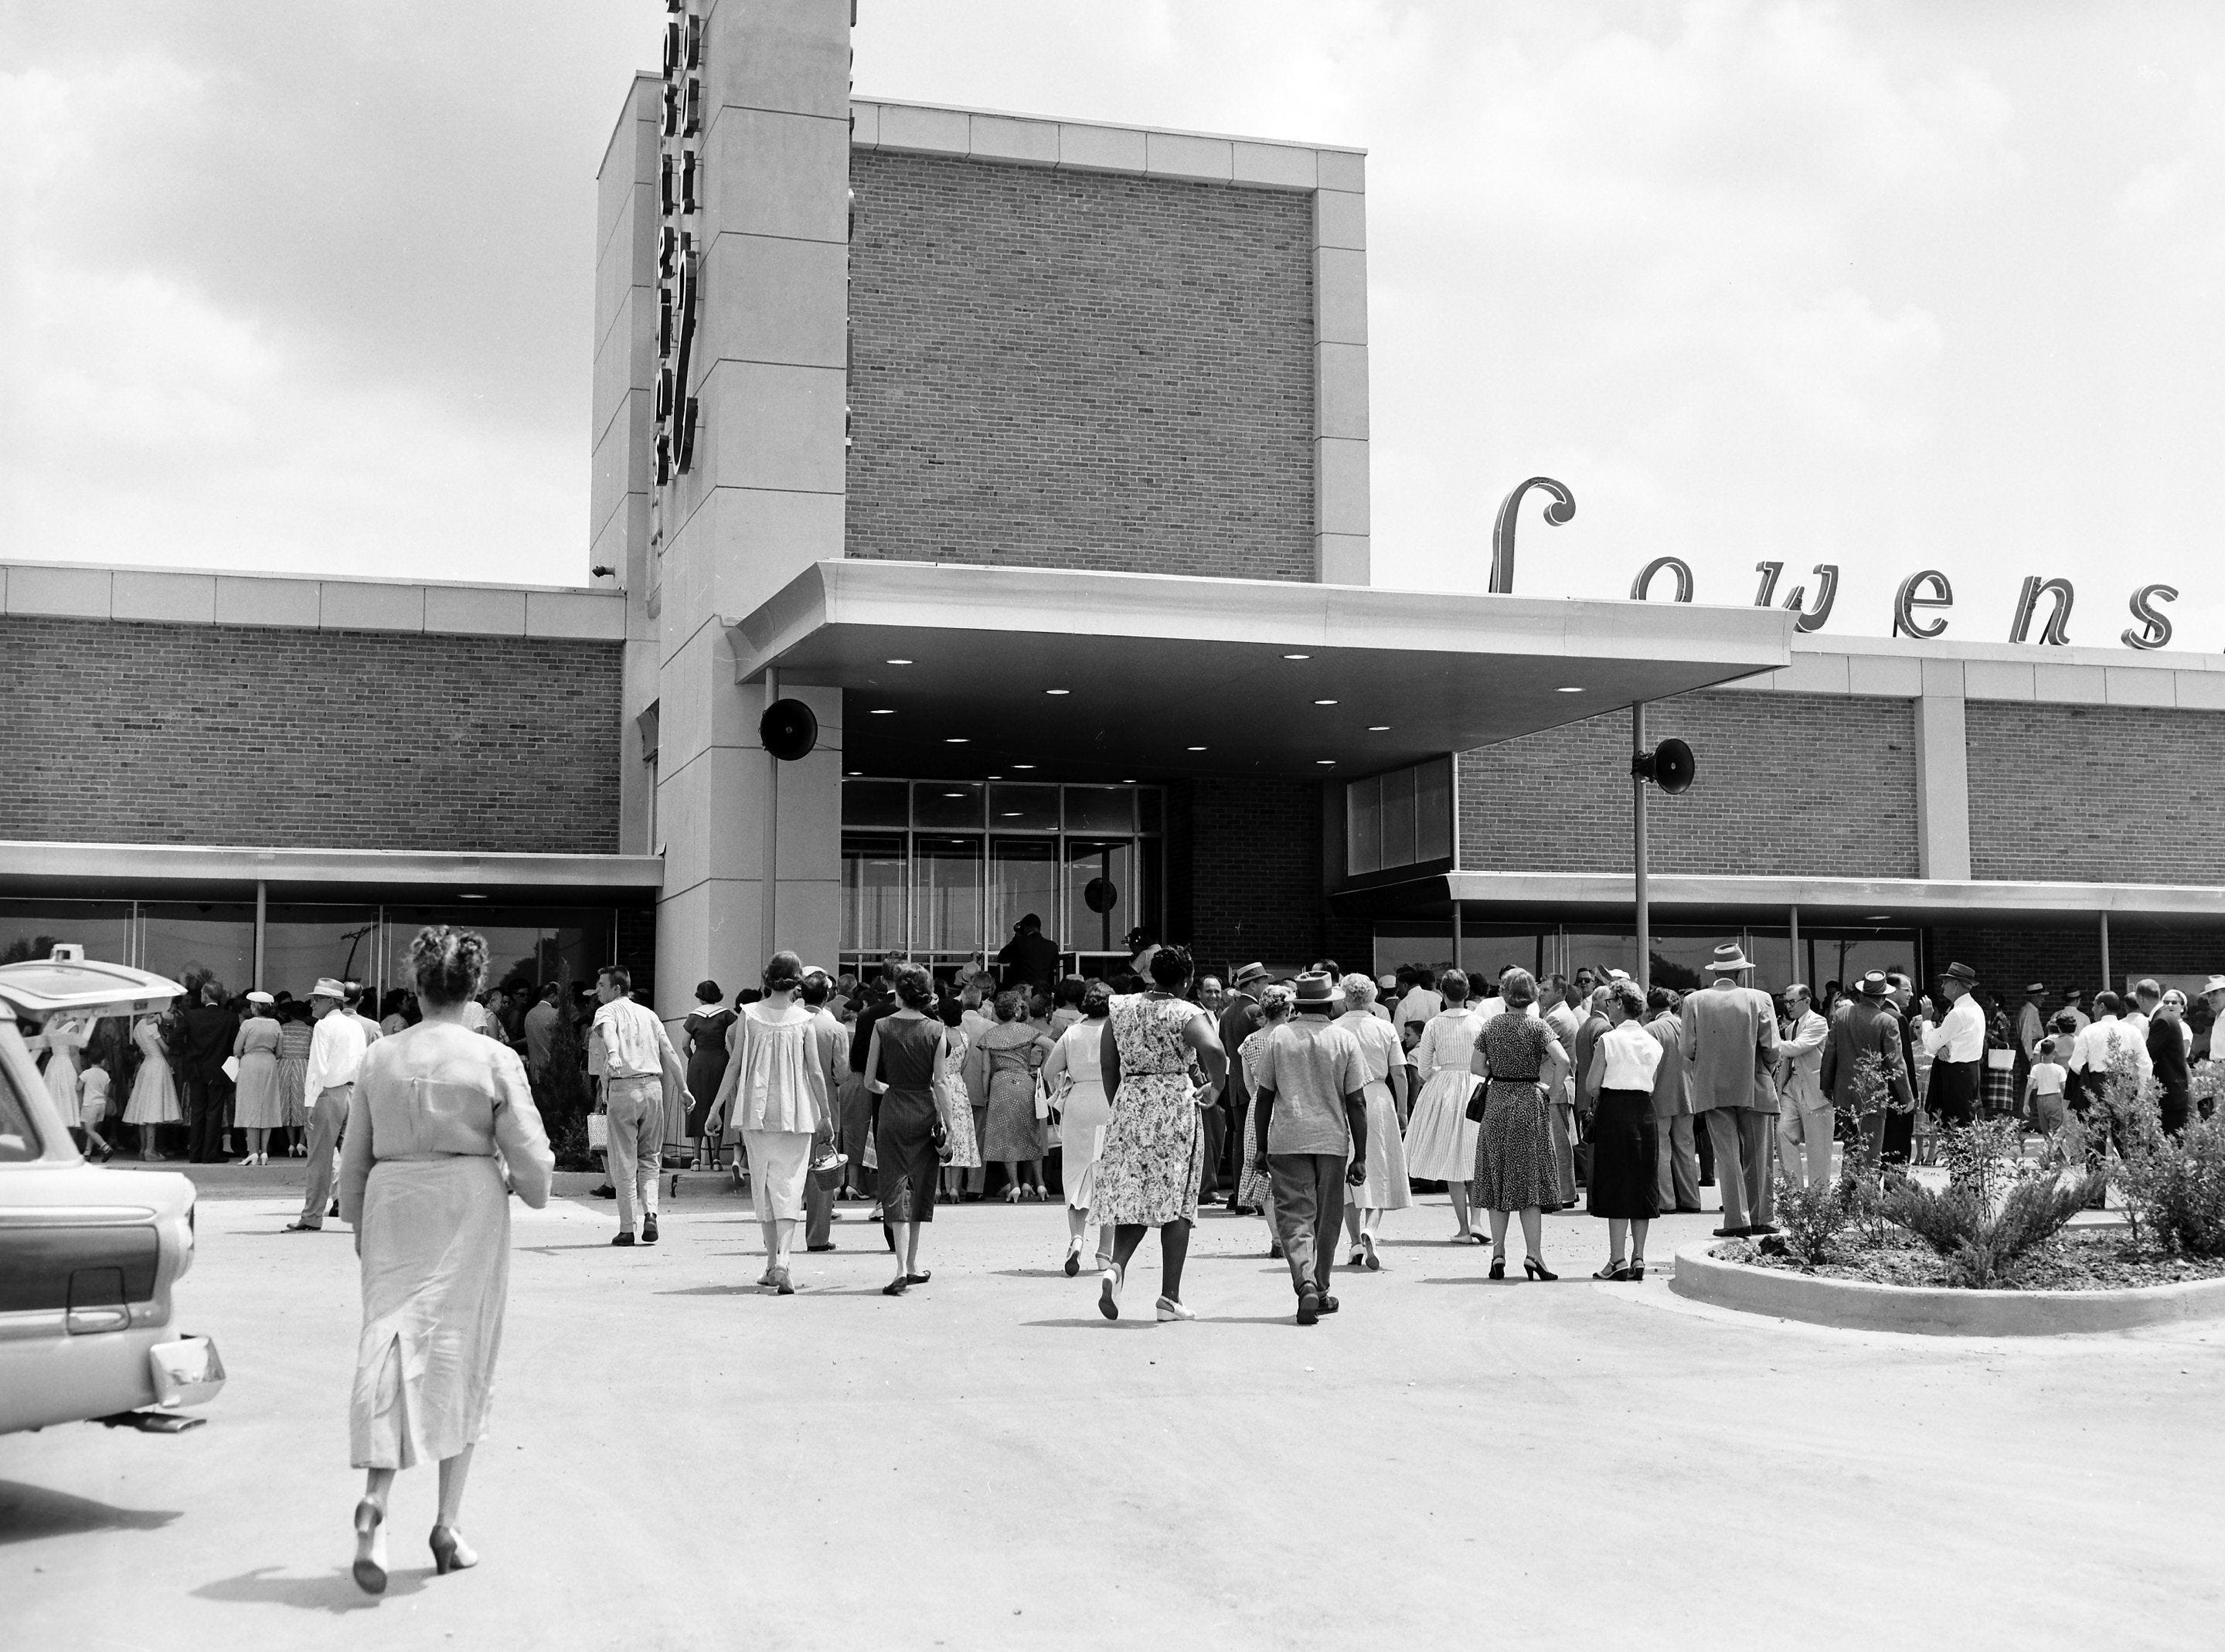 Eager customers streamed into the new $2 million Lowenstein?s South store at Whitehaven Plaza, U.S. 51 South and Raines Road on 1 Aug 1956 when the store was opened to the public. The store is the first of several to be located at the new John B. Goodwin Whitehaven Plaza.